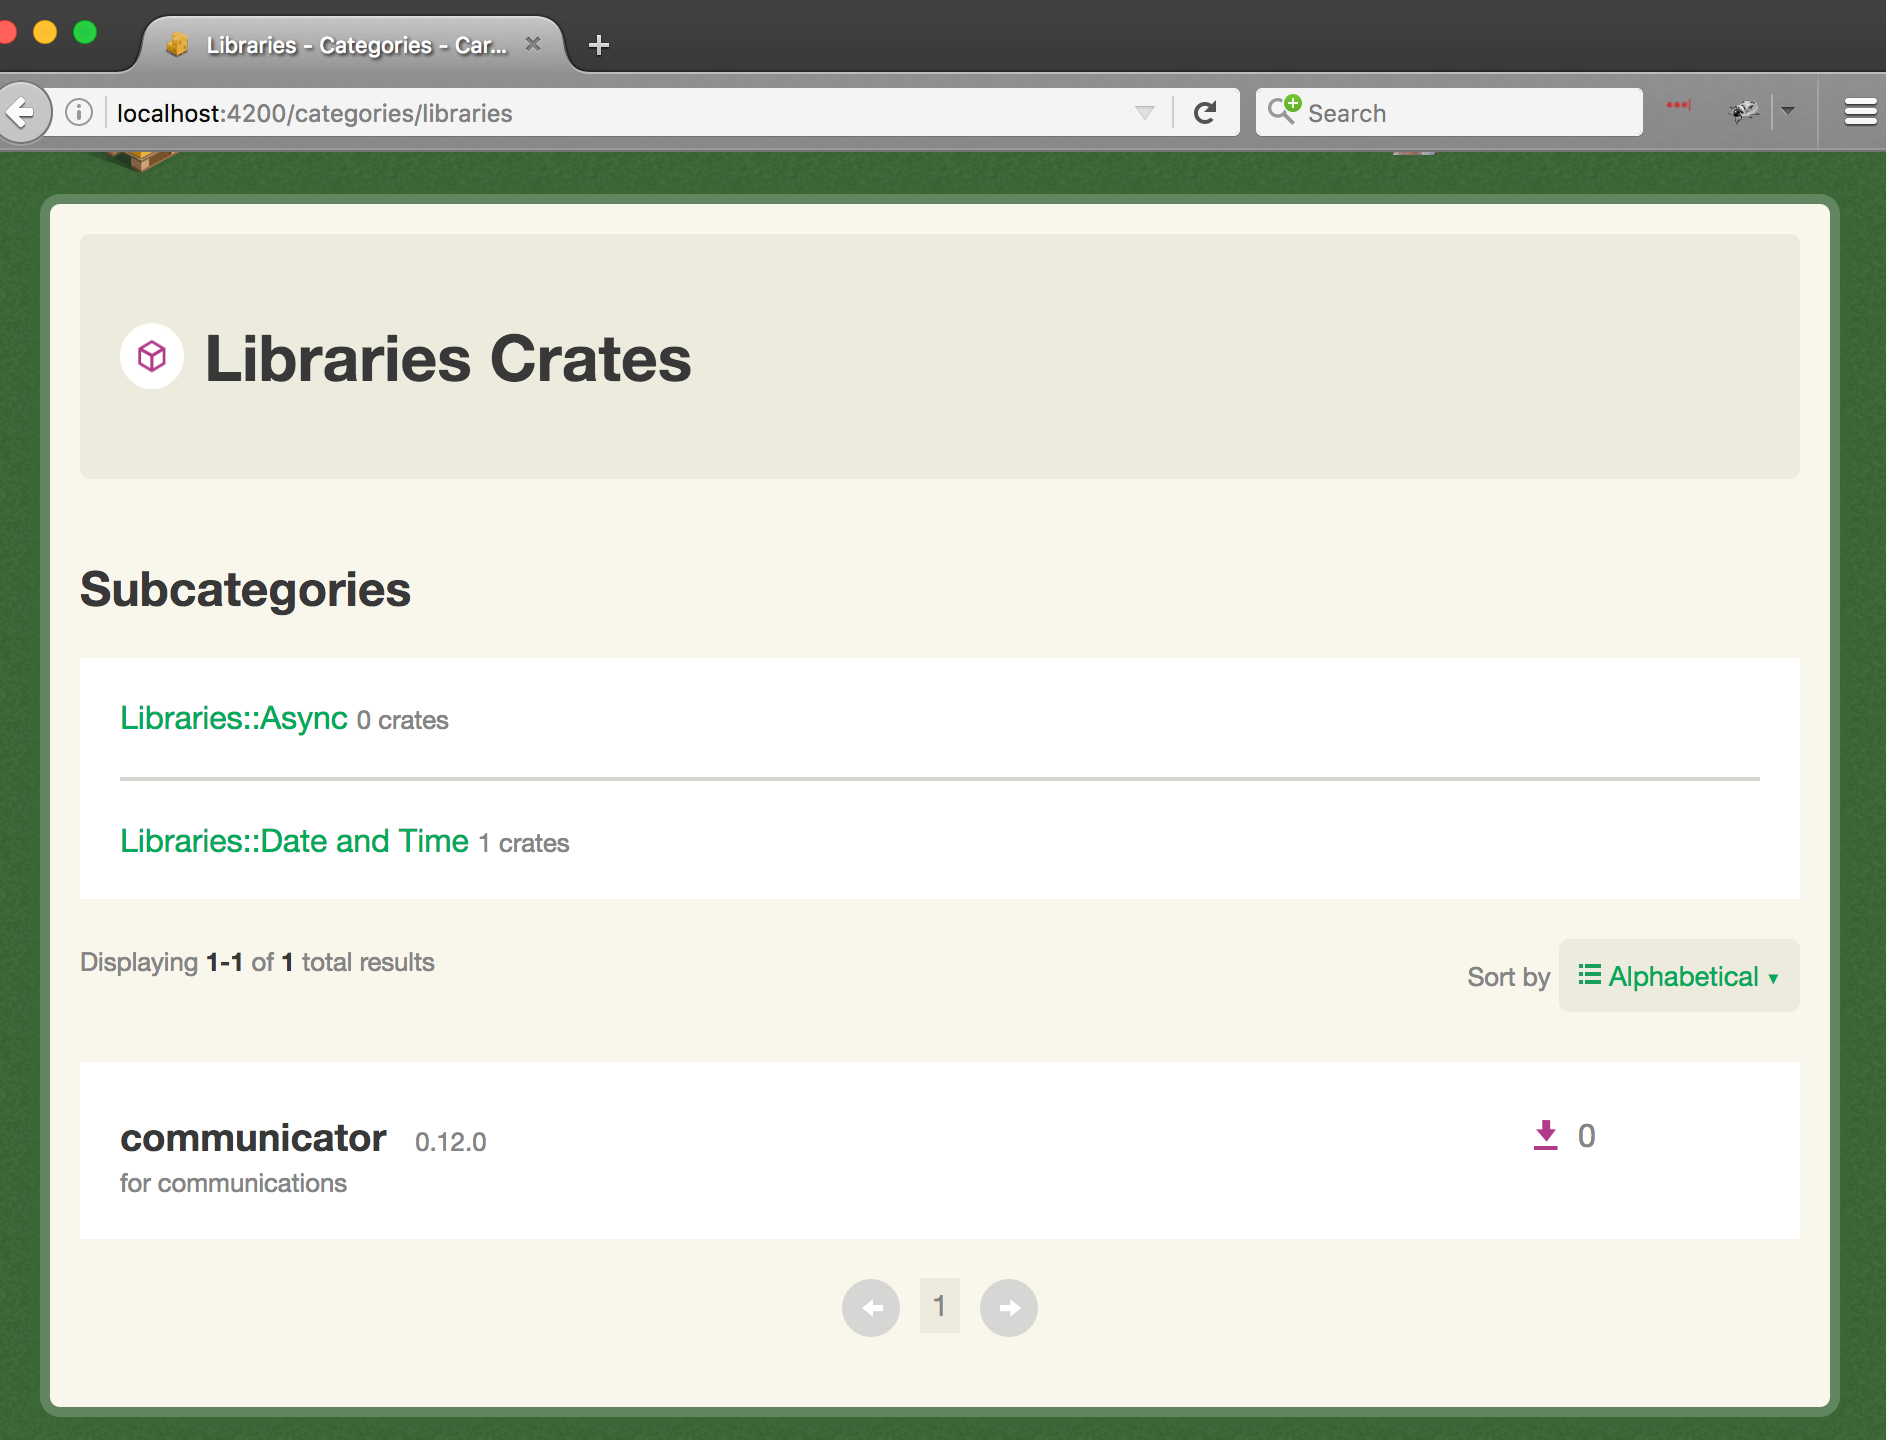 libraries-category-page